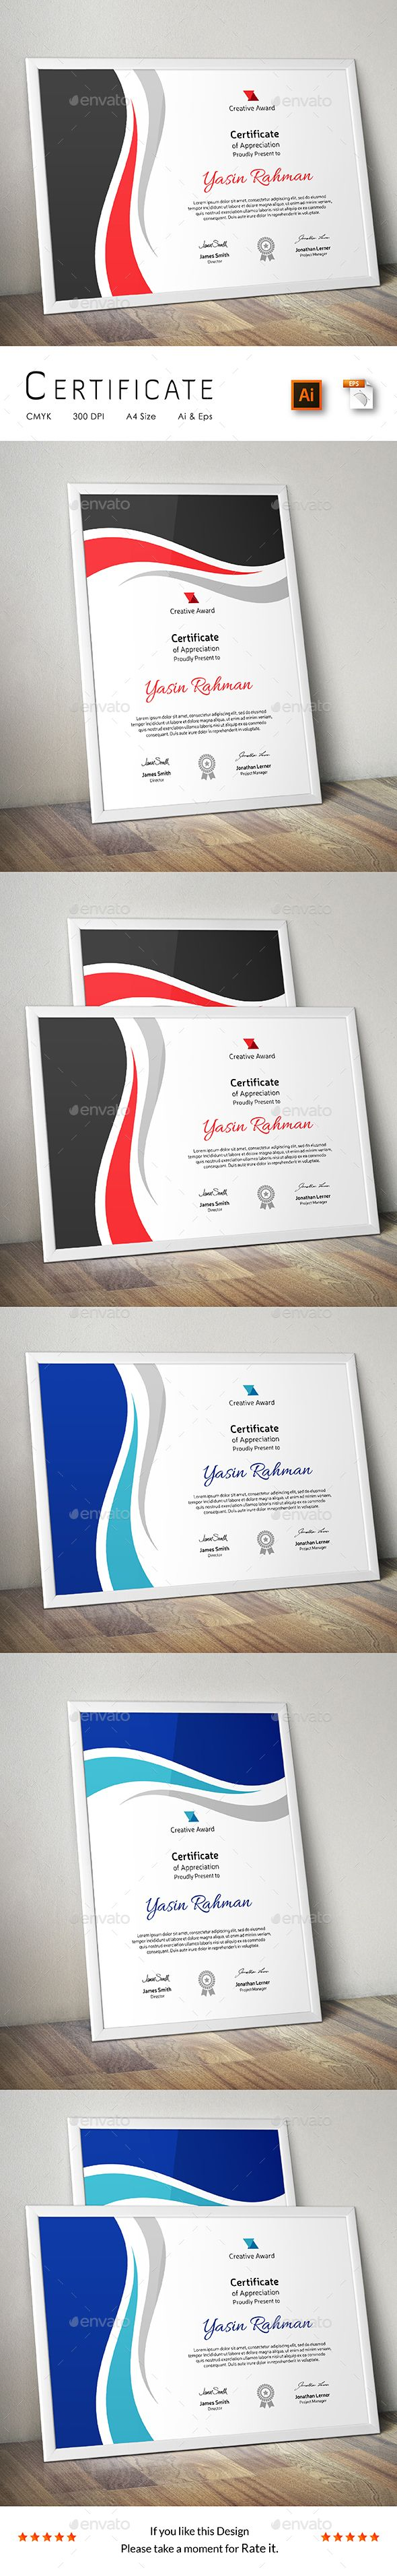 23 best certificate template design images on pinterest certificate download here httpgraphicriveritemcertificate yadclub Choice Image